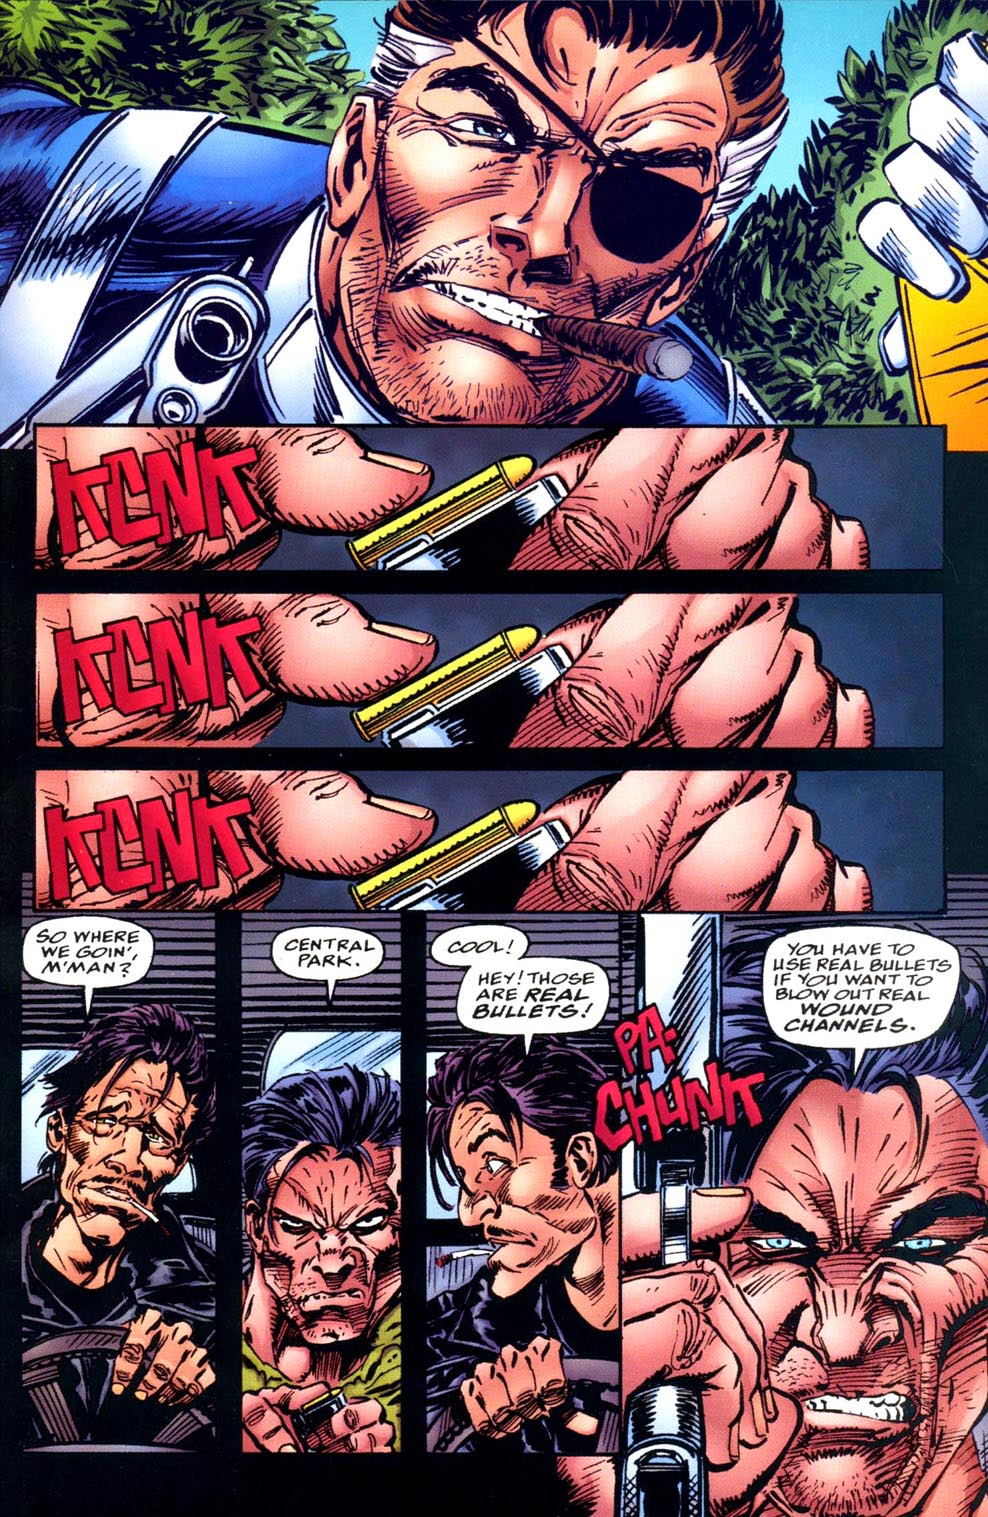 Read online Double Edge comic -  Issue # Issue Alpha - 39